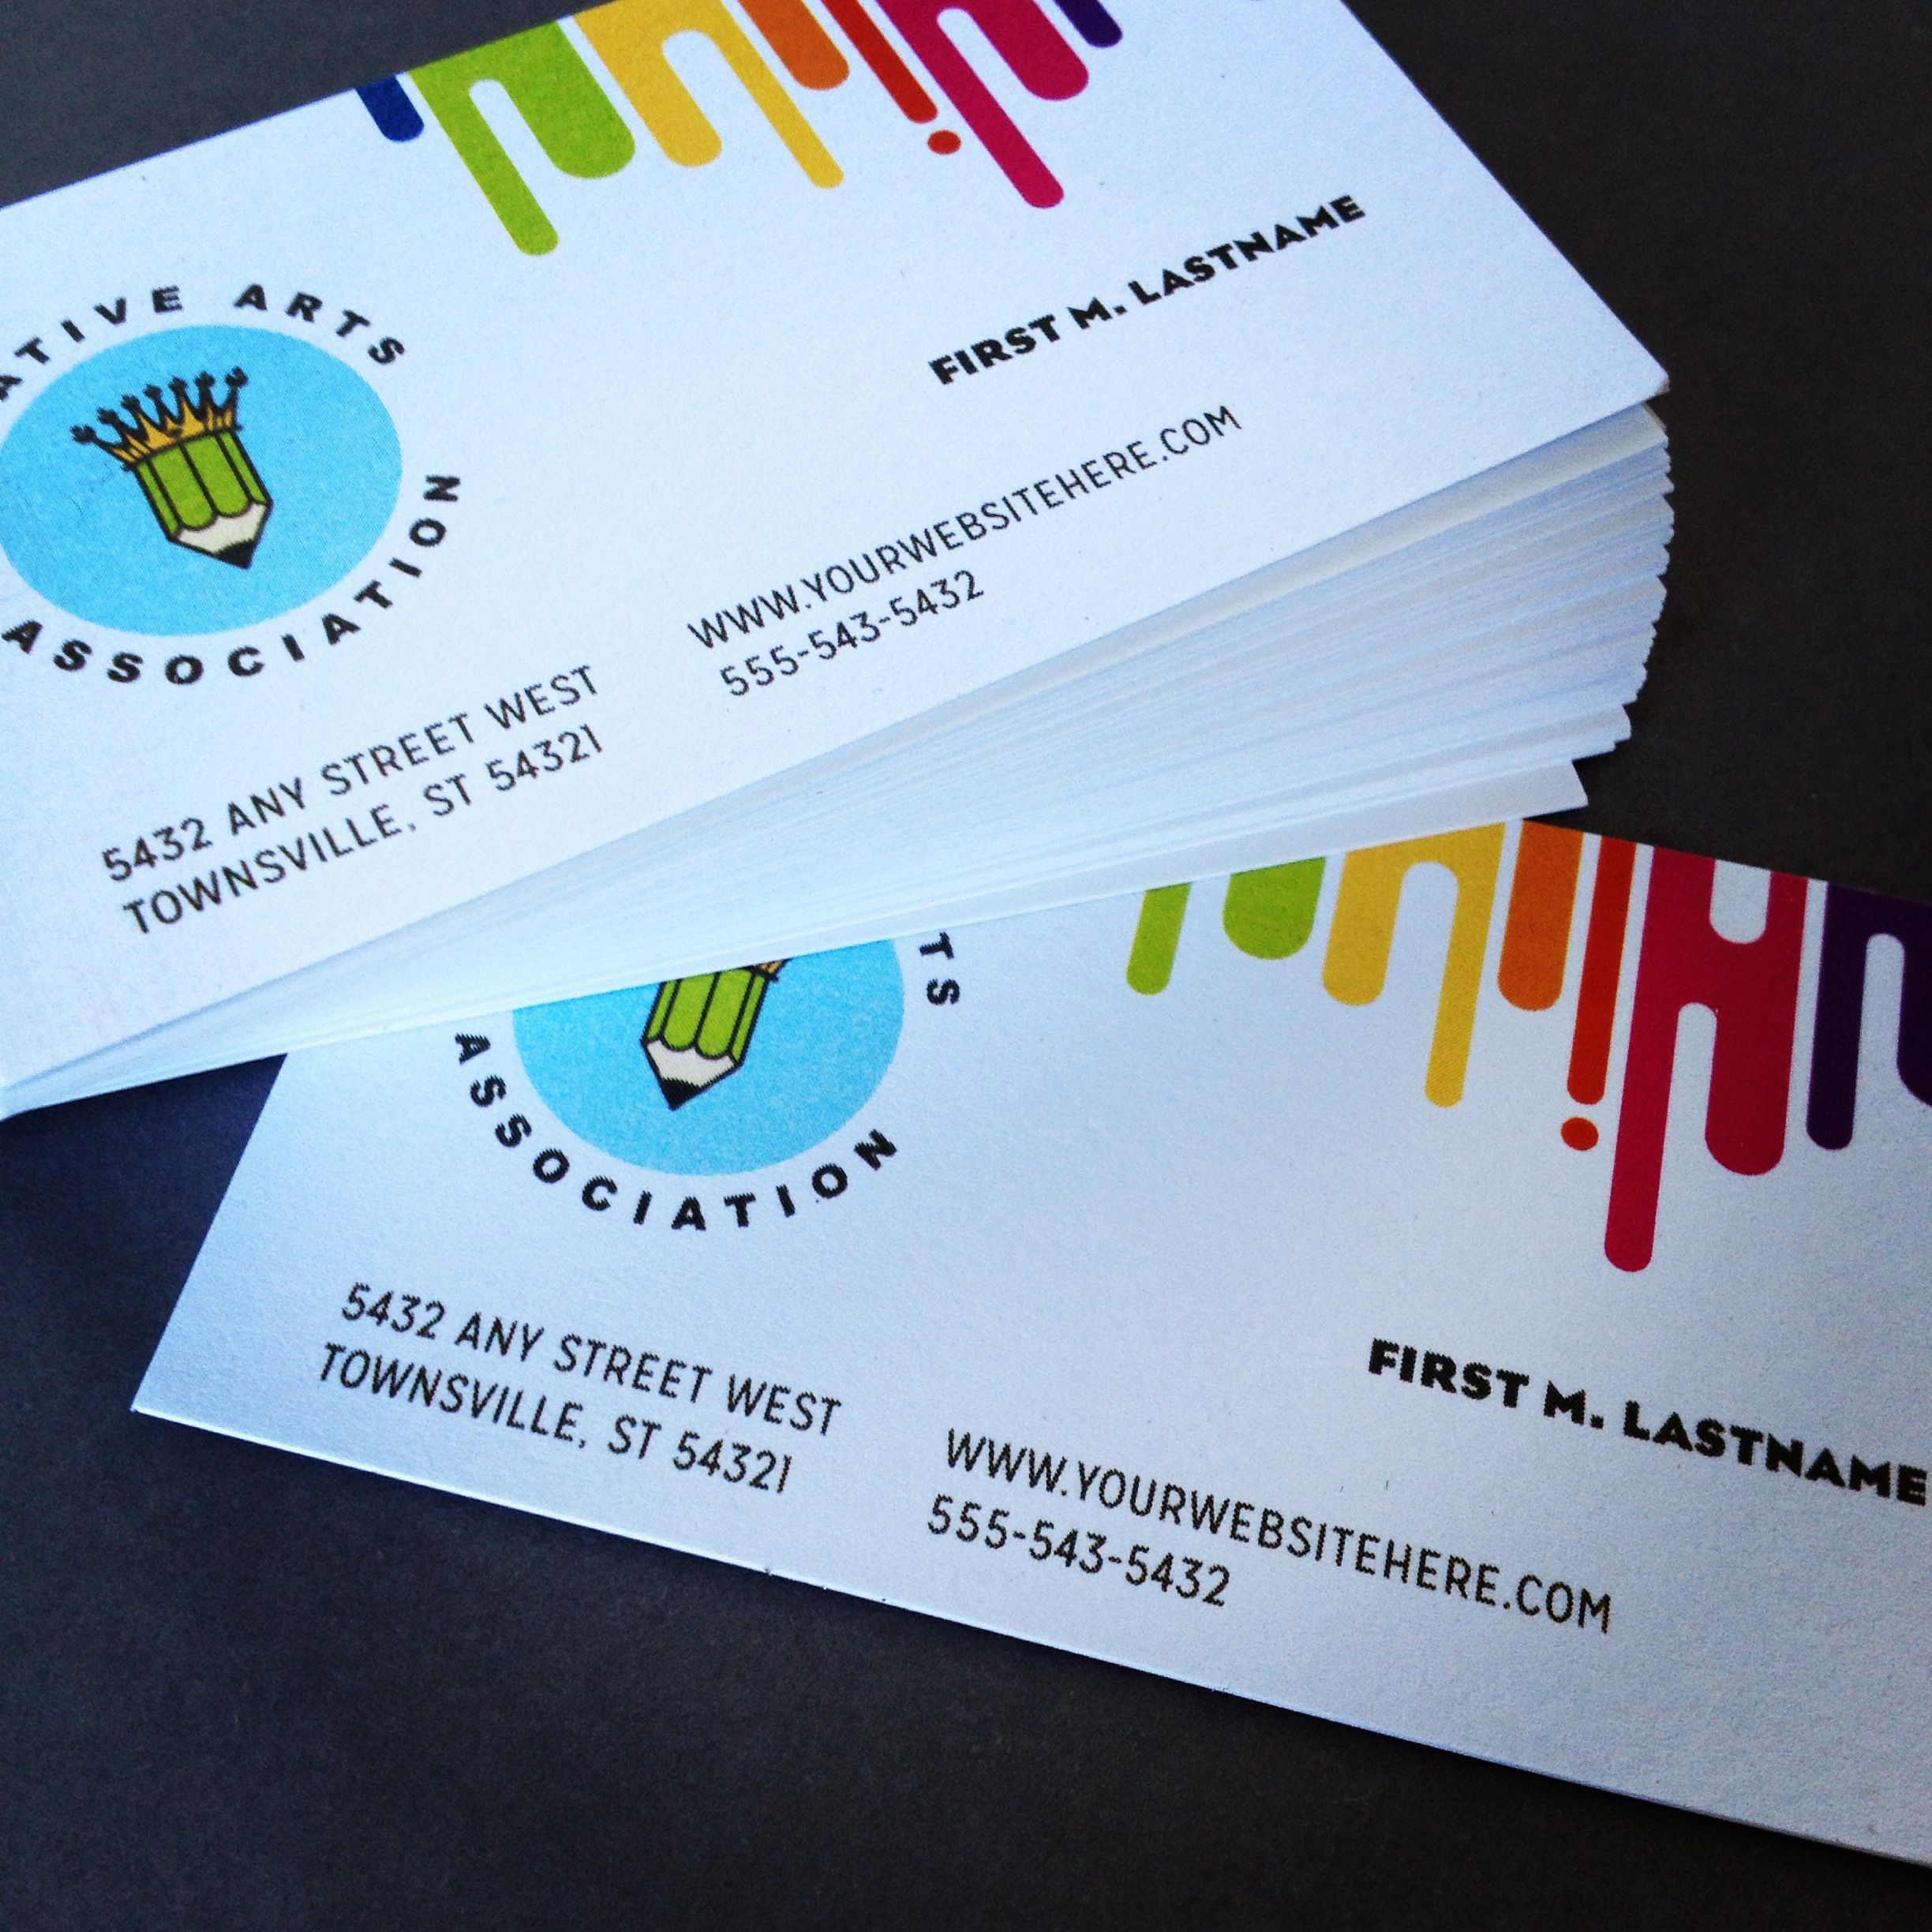 Kids art camp business card design by StockLayouts | Education ...